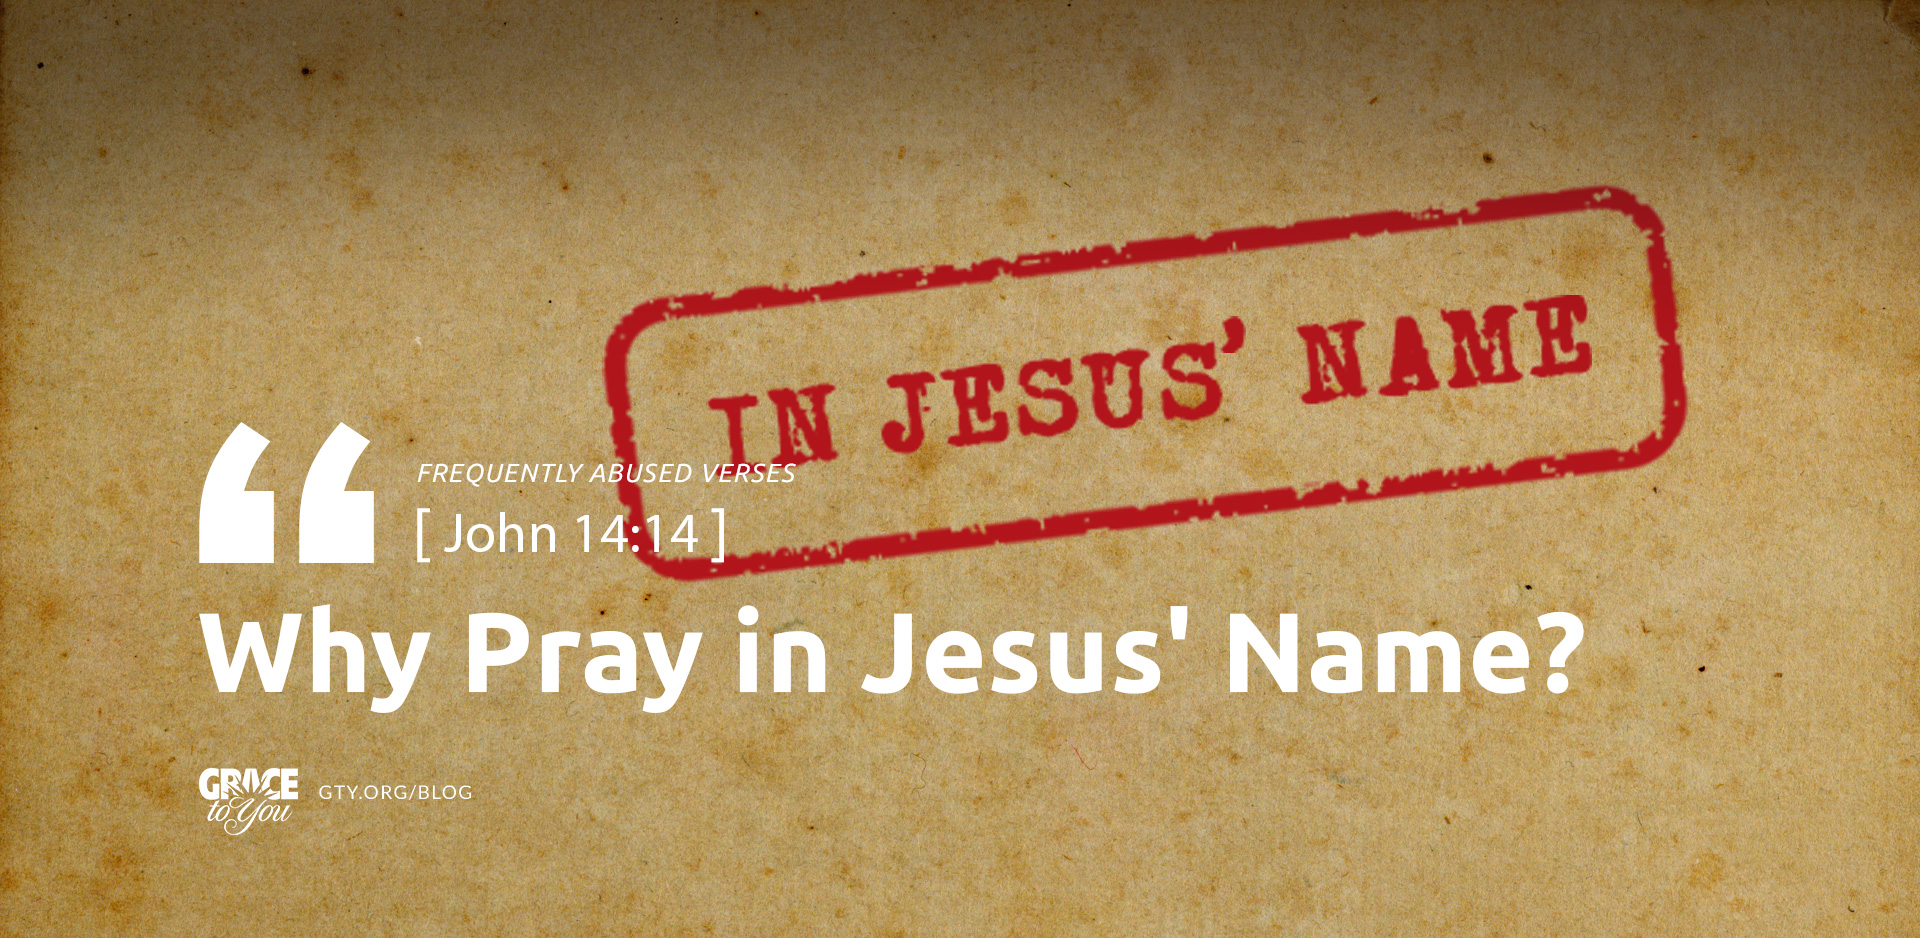 Frequently Abused Verses: Why Pray in Jesus' Name?